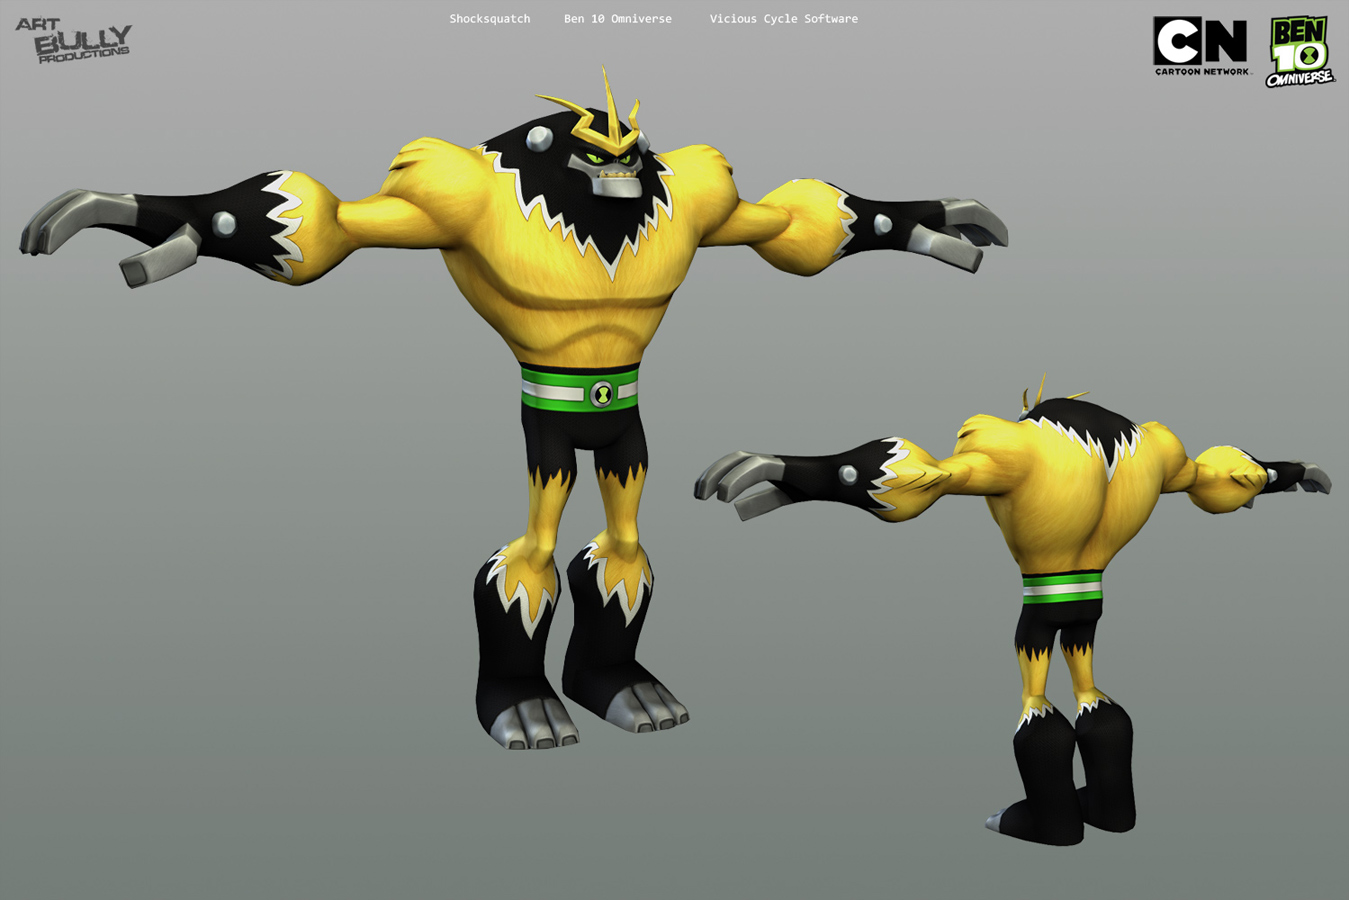 Displaying 20 gt images for ben 10 omniverse shocksquatch